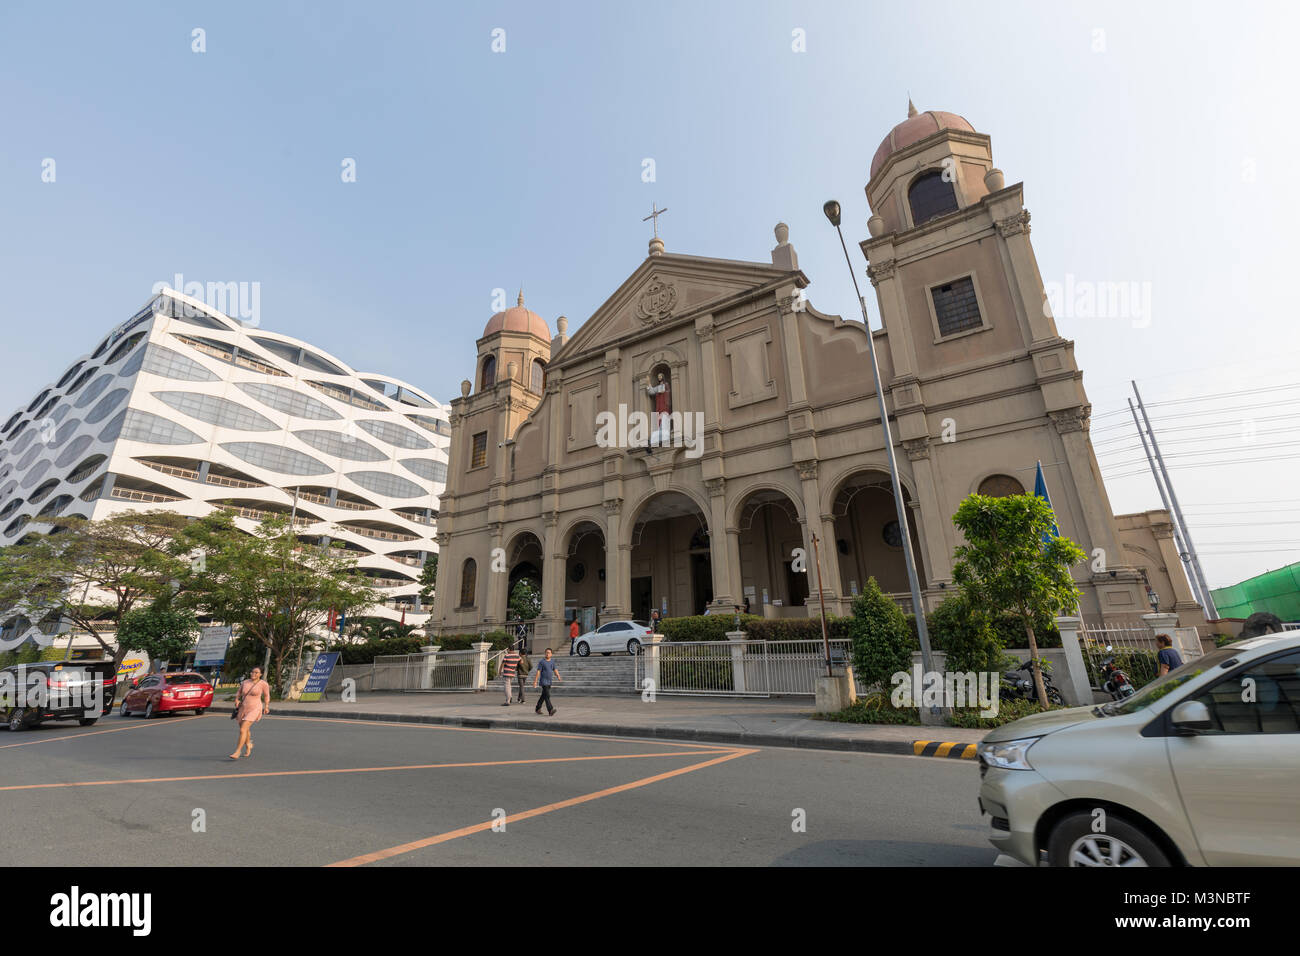 Manila, Philippines - Feb 10, 2018 : Facade of catholic churches beside in the Mall of Asia shopping mall of Pasay - Stock Image